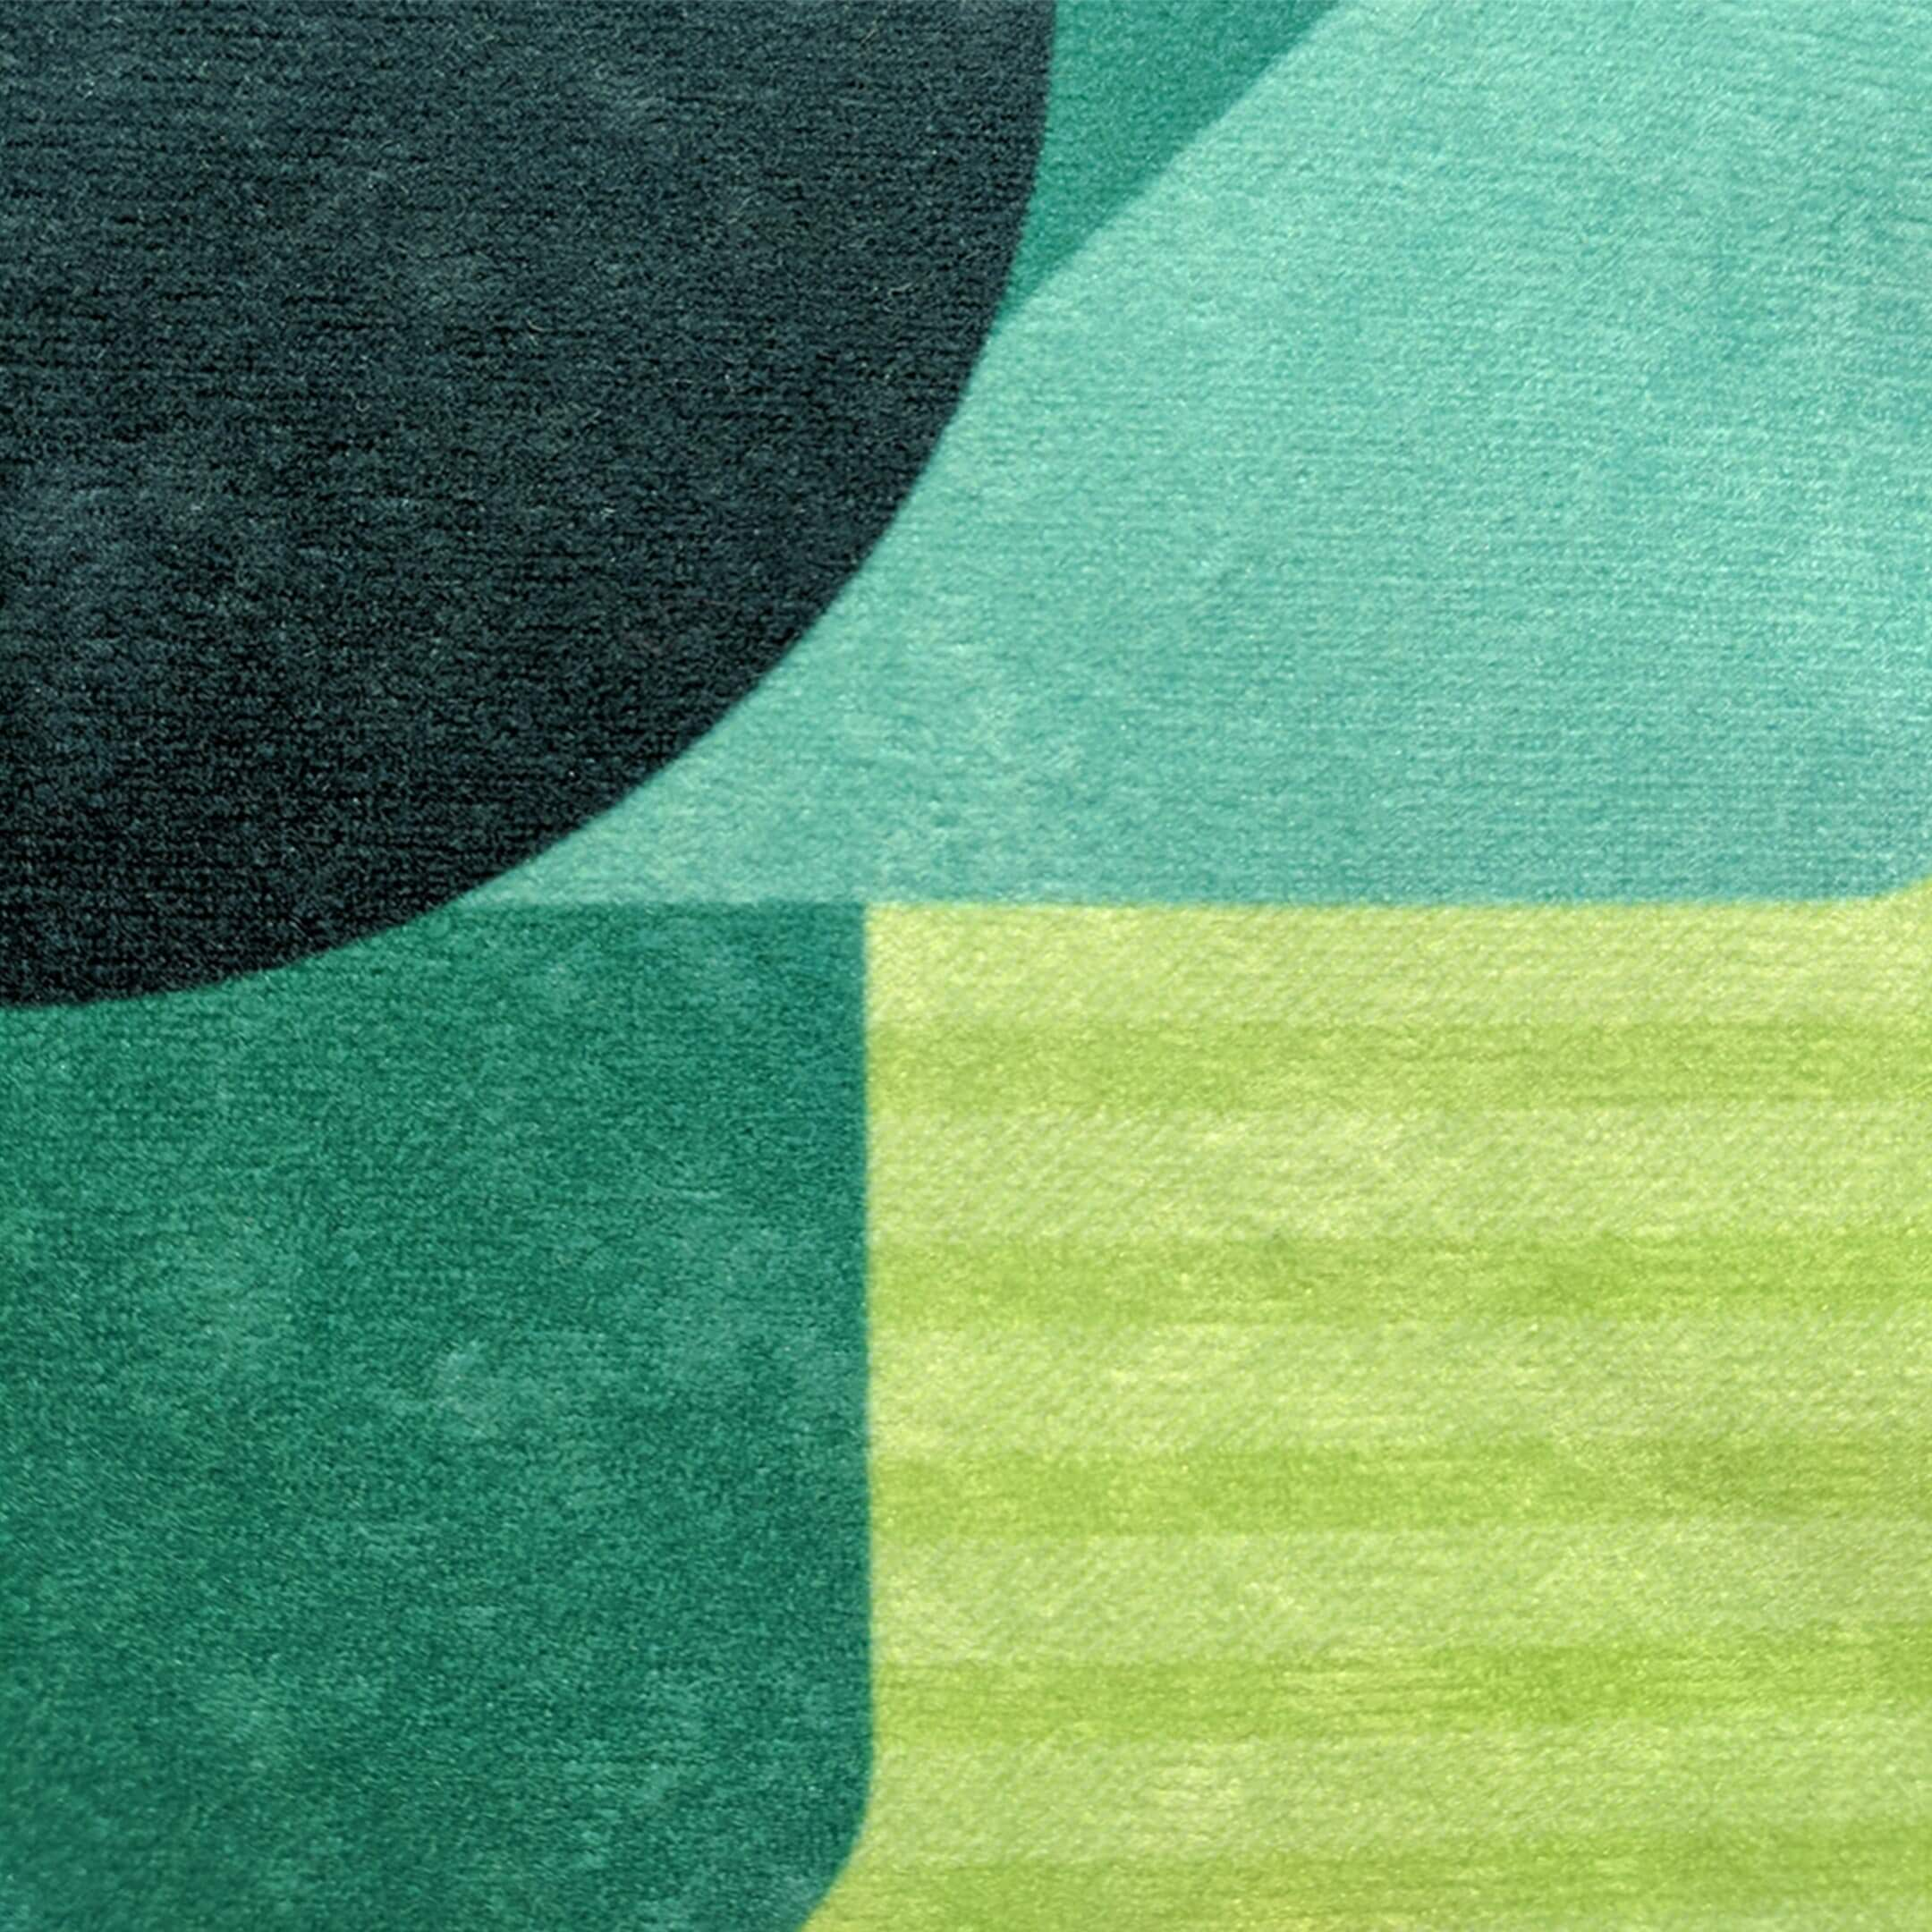 Fabric swatch for green faux suede throw pillow